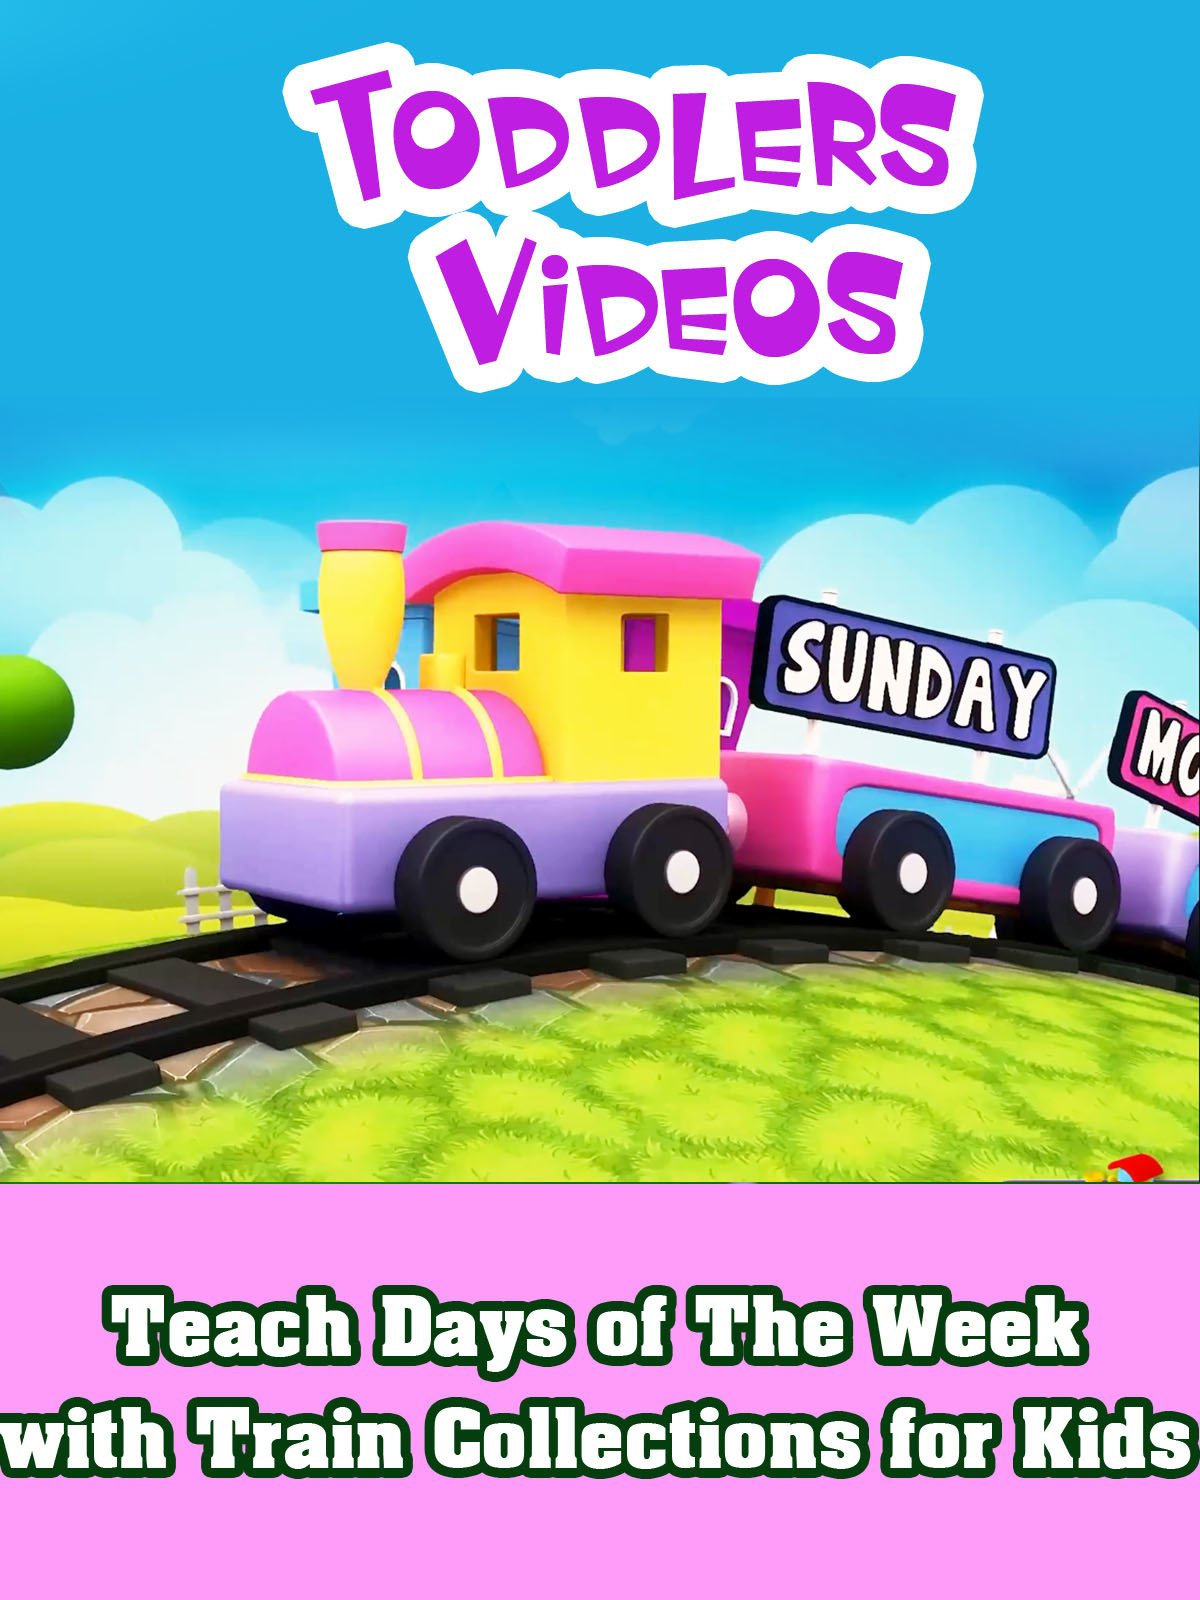 Teach Days of The Week with Train Collections for Kids